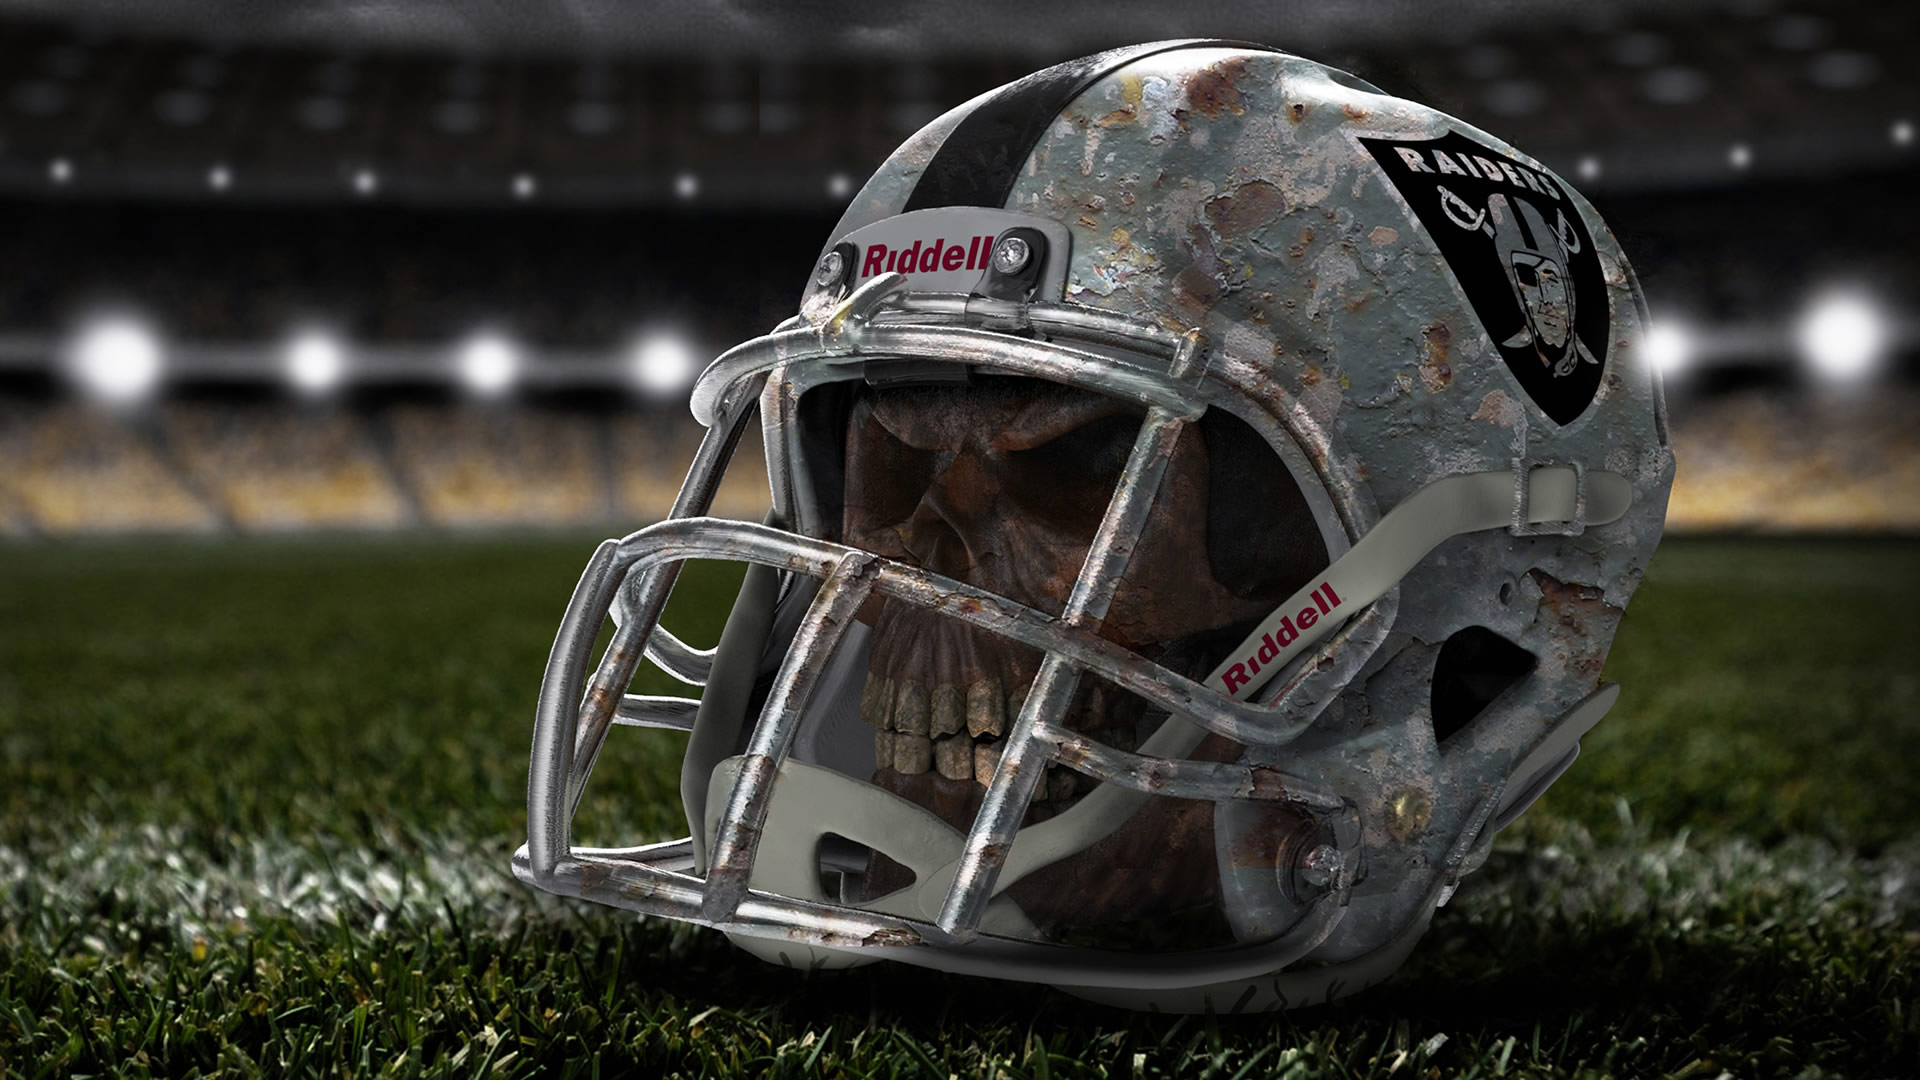 Oakland Raiders Digital Branding Clutchco 1920x1080